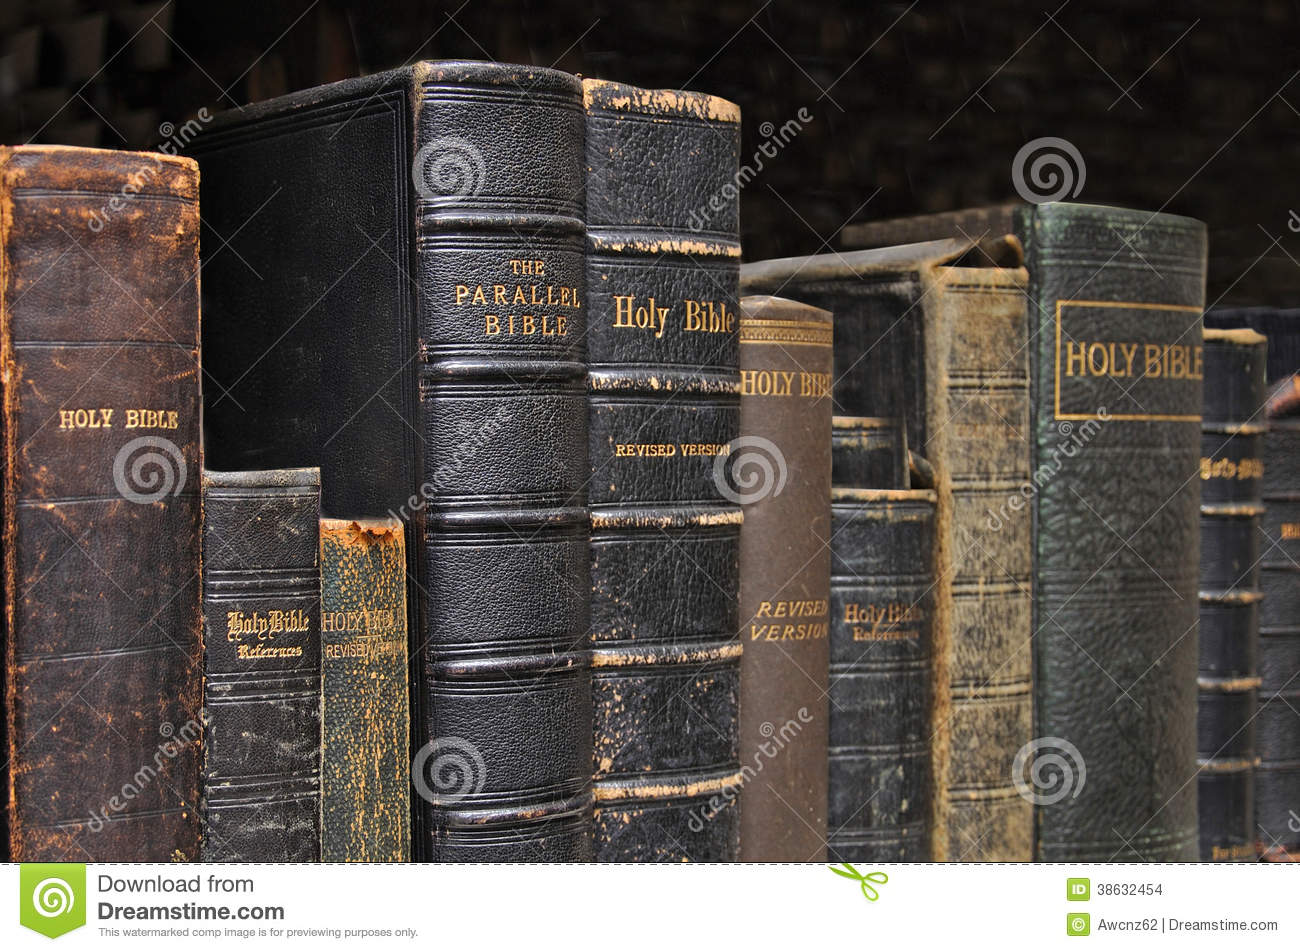 Shelf of Bibles stock photo  Image of shelf, nostalgia - 38632454